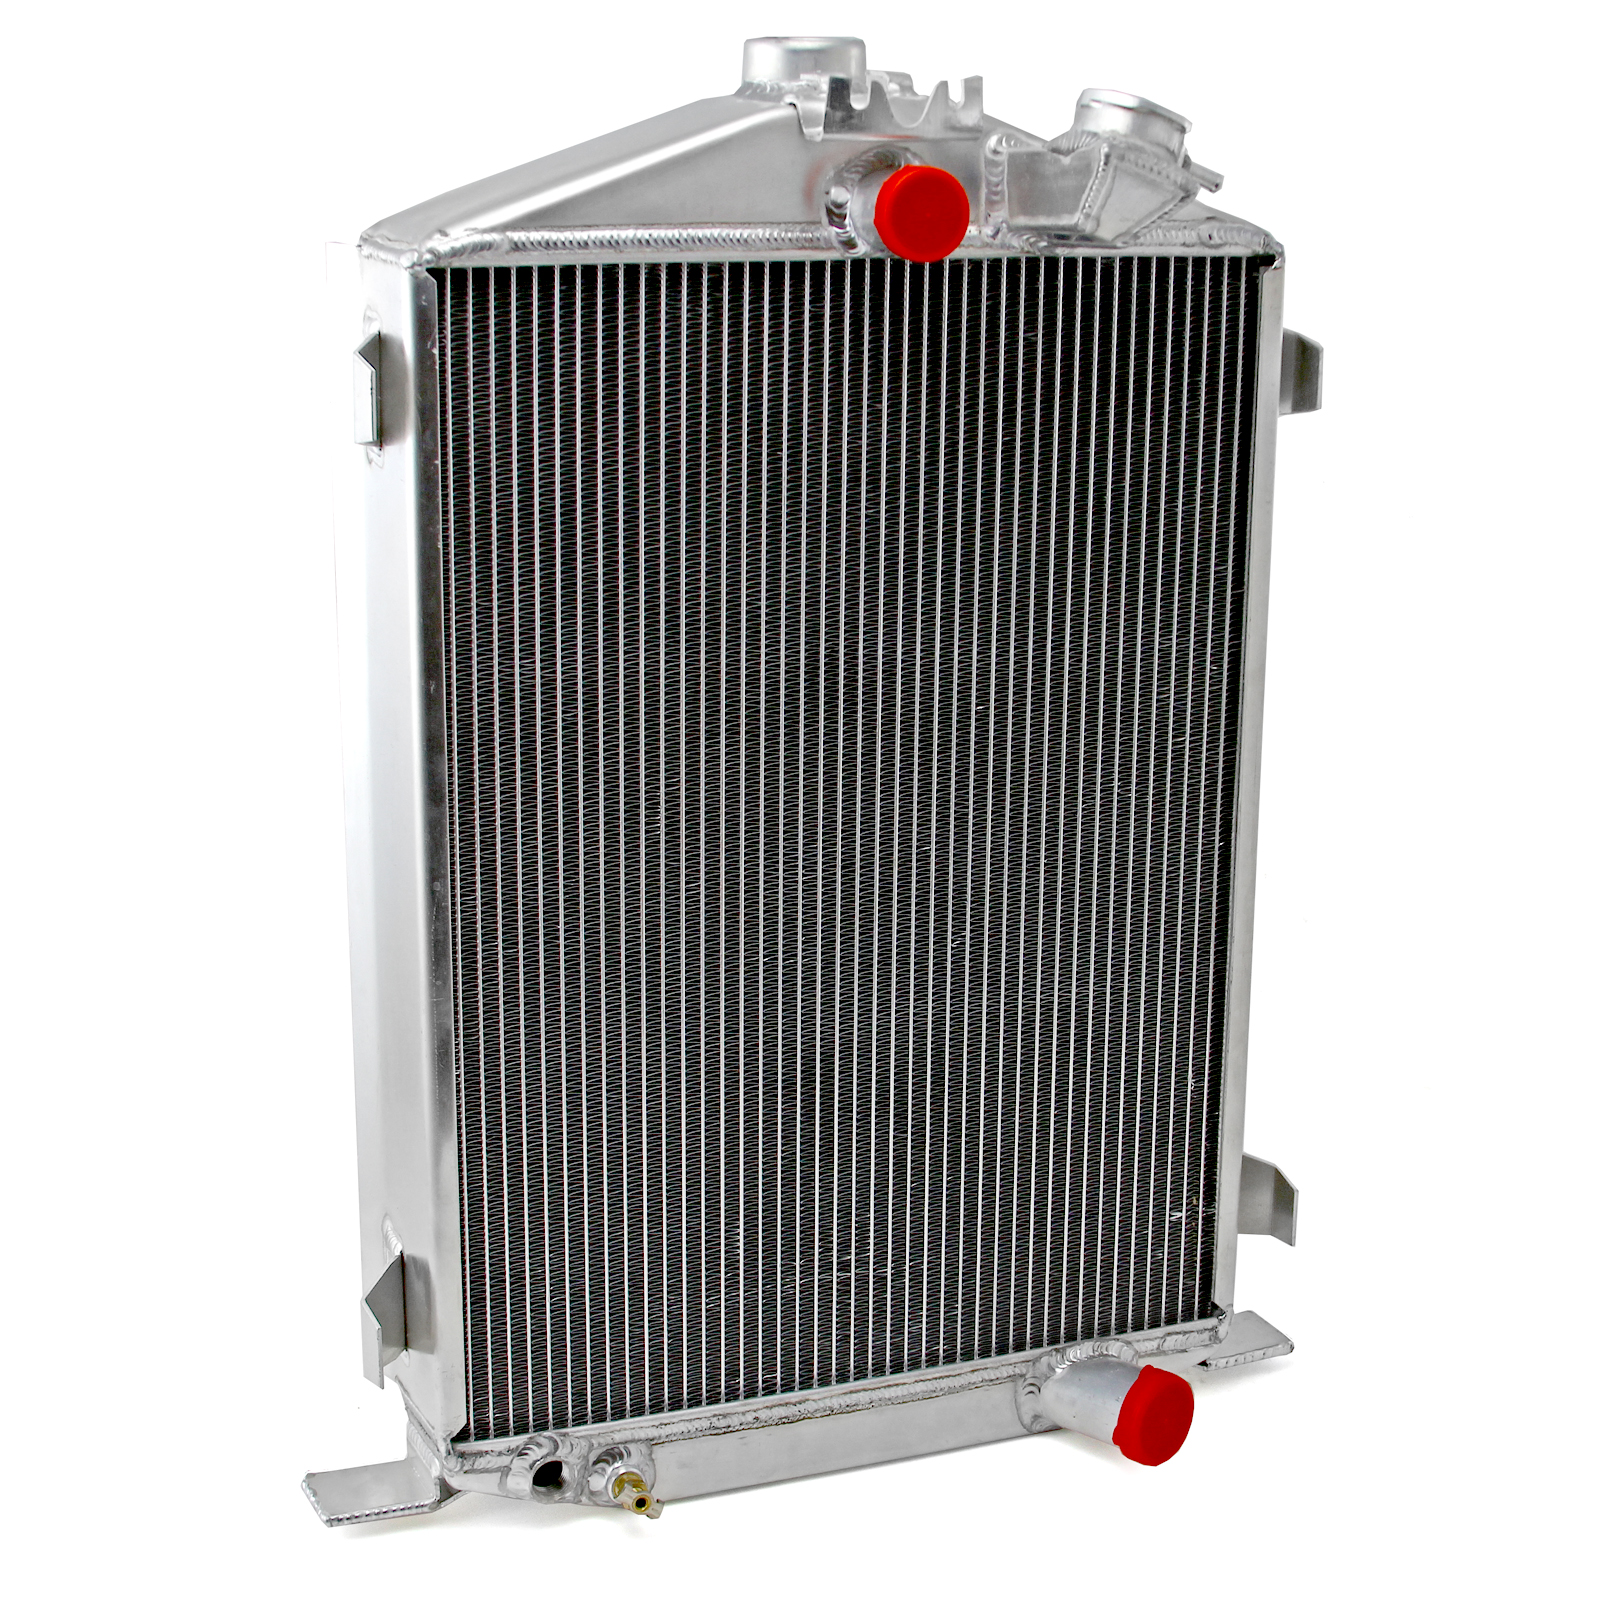 Ford Roadster High Boy 1933-34 Aluminum Radiator Polished (Tall)